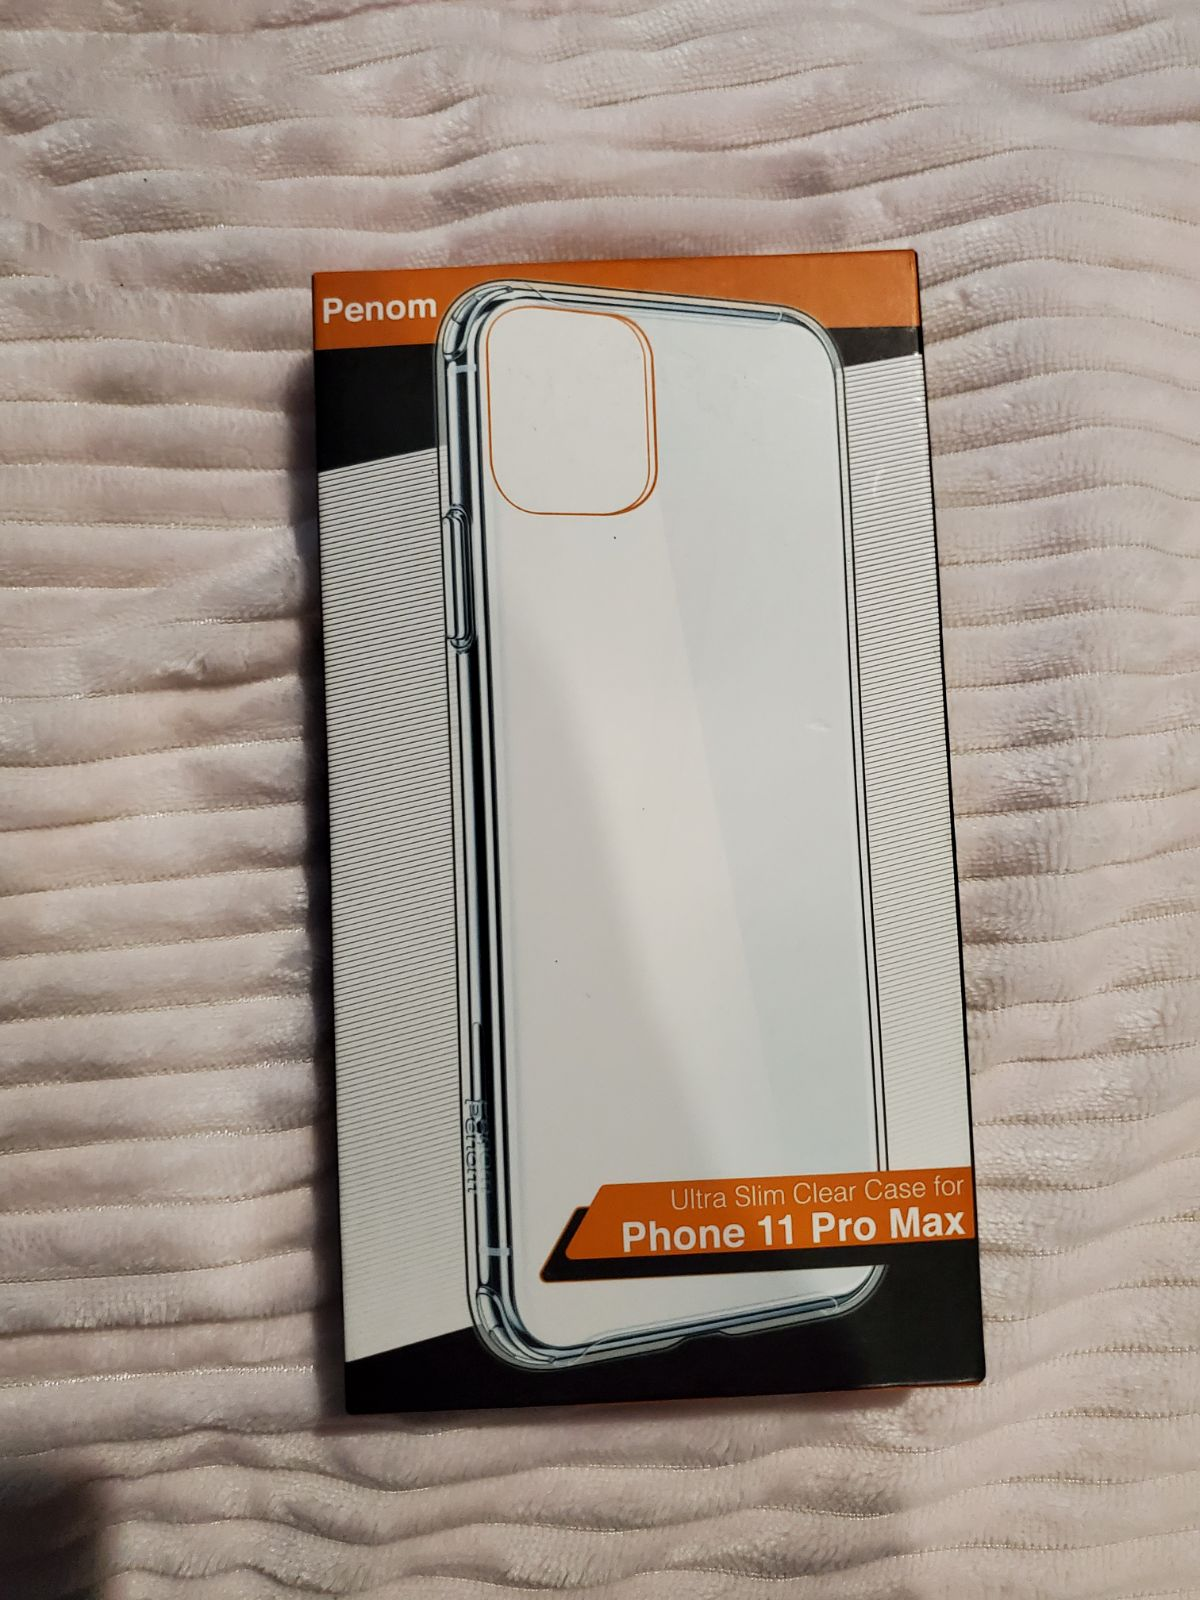 iPhone 11 Pro Max Ultra Slim Clear Case